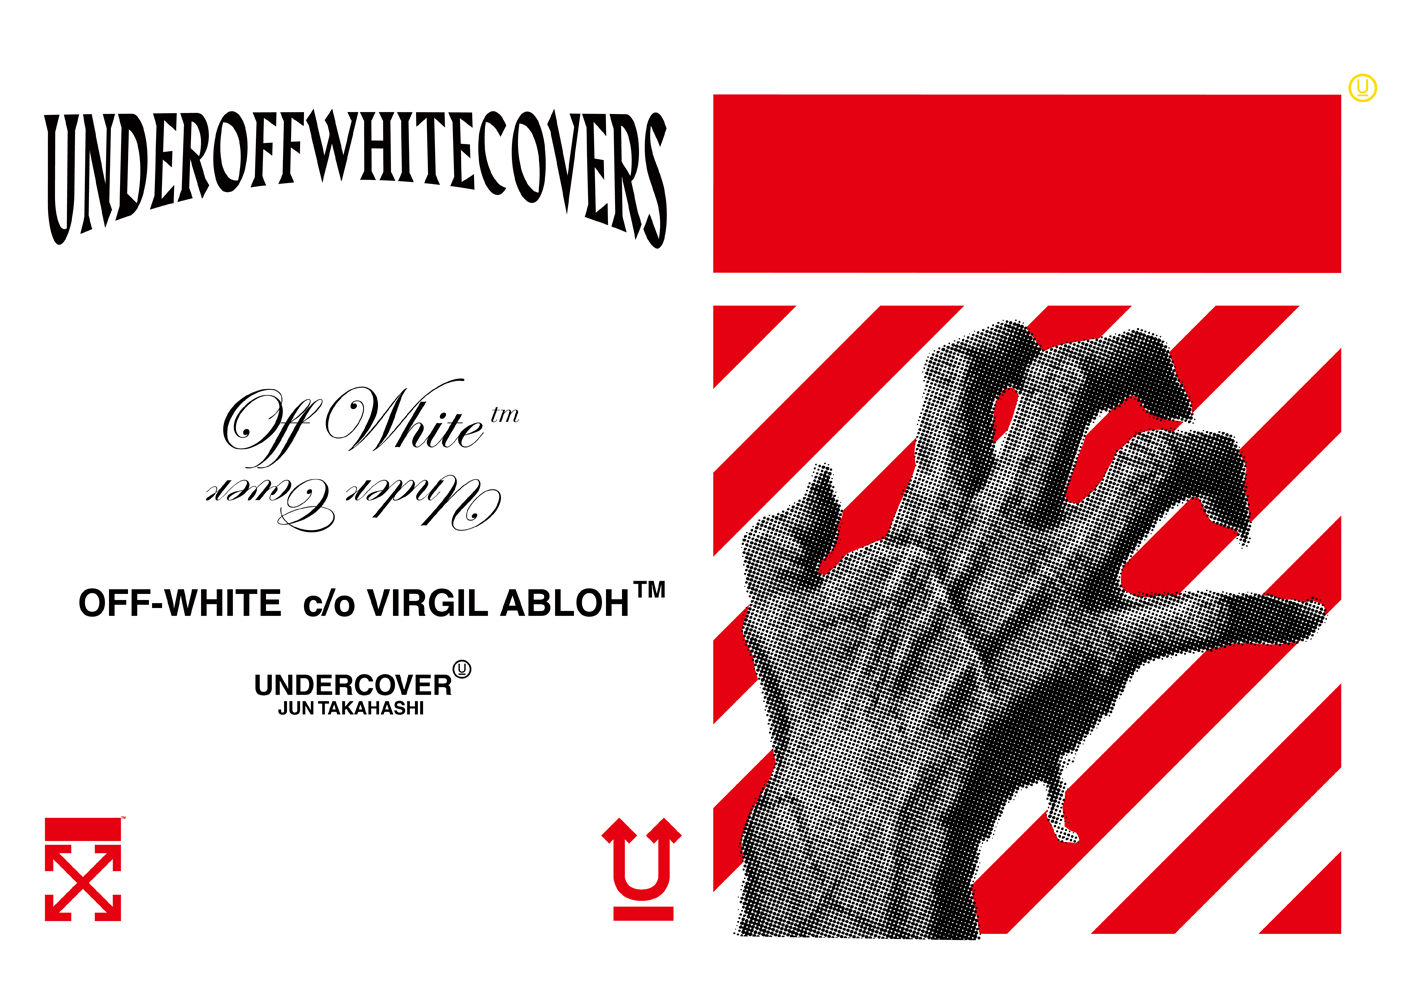 「OFF-WHITE™」と「UNDERCOVER」<br> 初のコレクション、日本先行発売